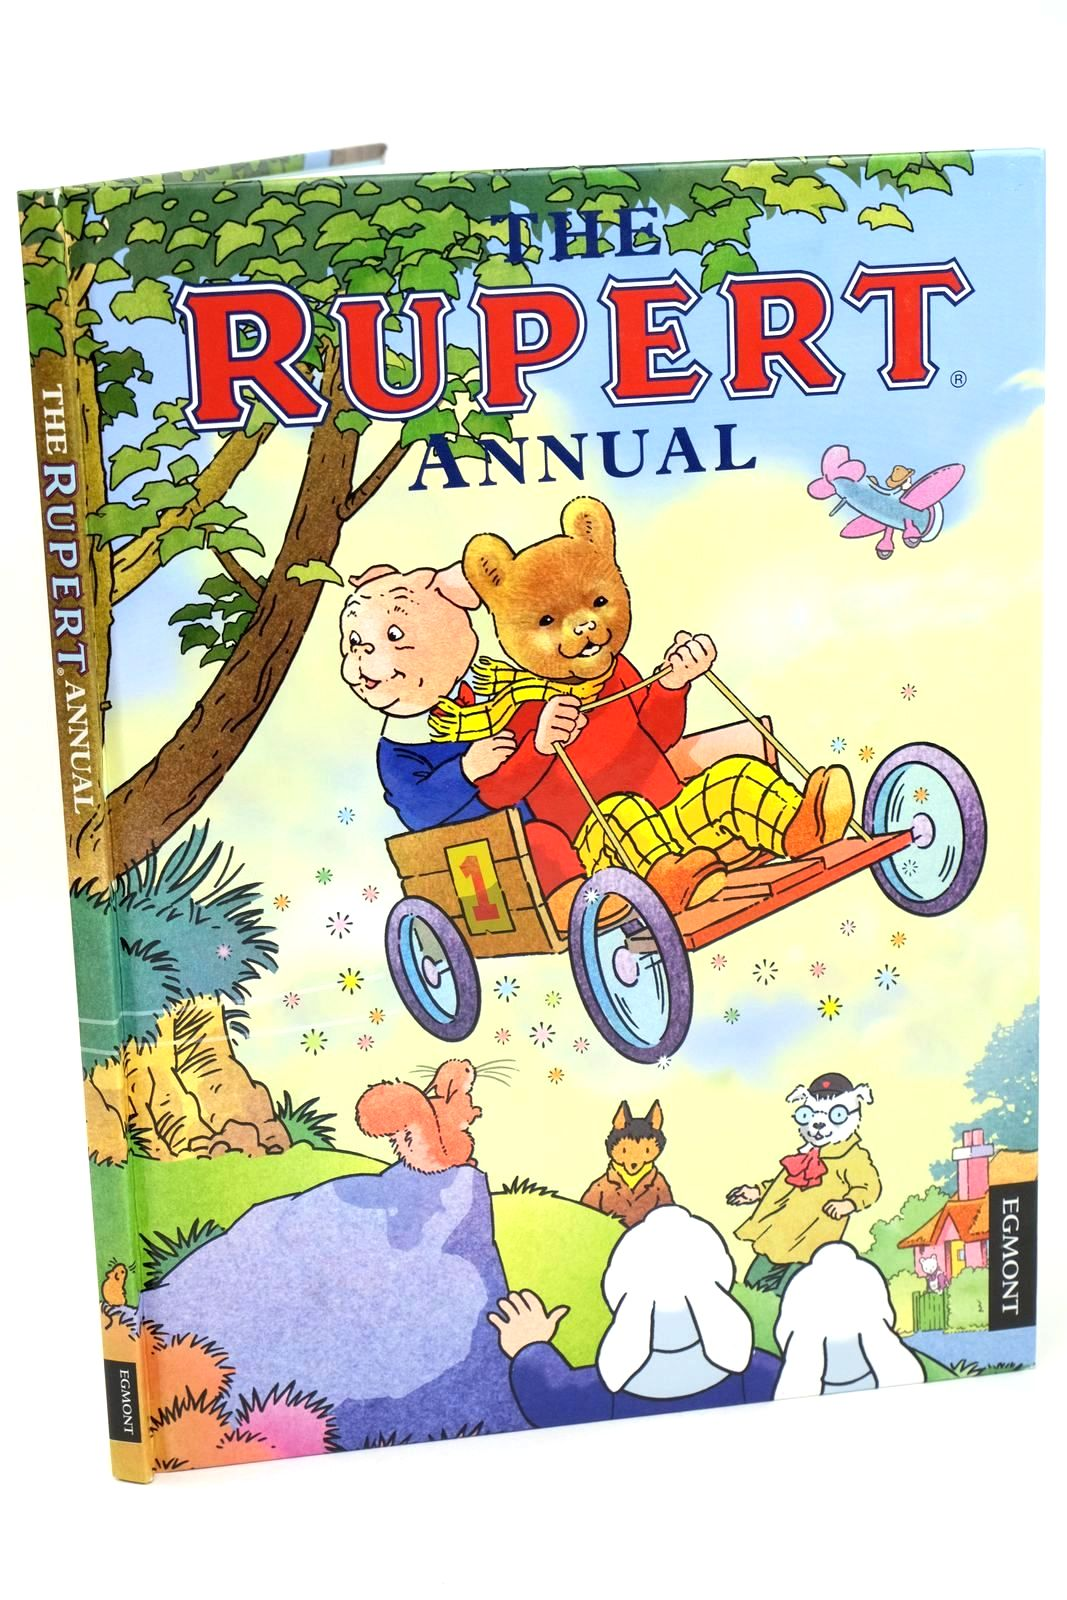 Photo of RUPERT ANNUAL 2013 illustrated by Bestall, Alfred Ash, Enid Trotter, Stuart Harrold, John published by Egmont Uk Limited (STOCK CODE: 1318515)  for sale by Stella & Rose's Books